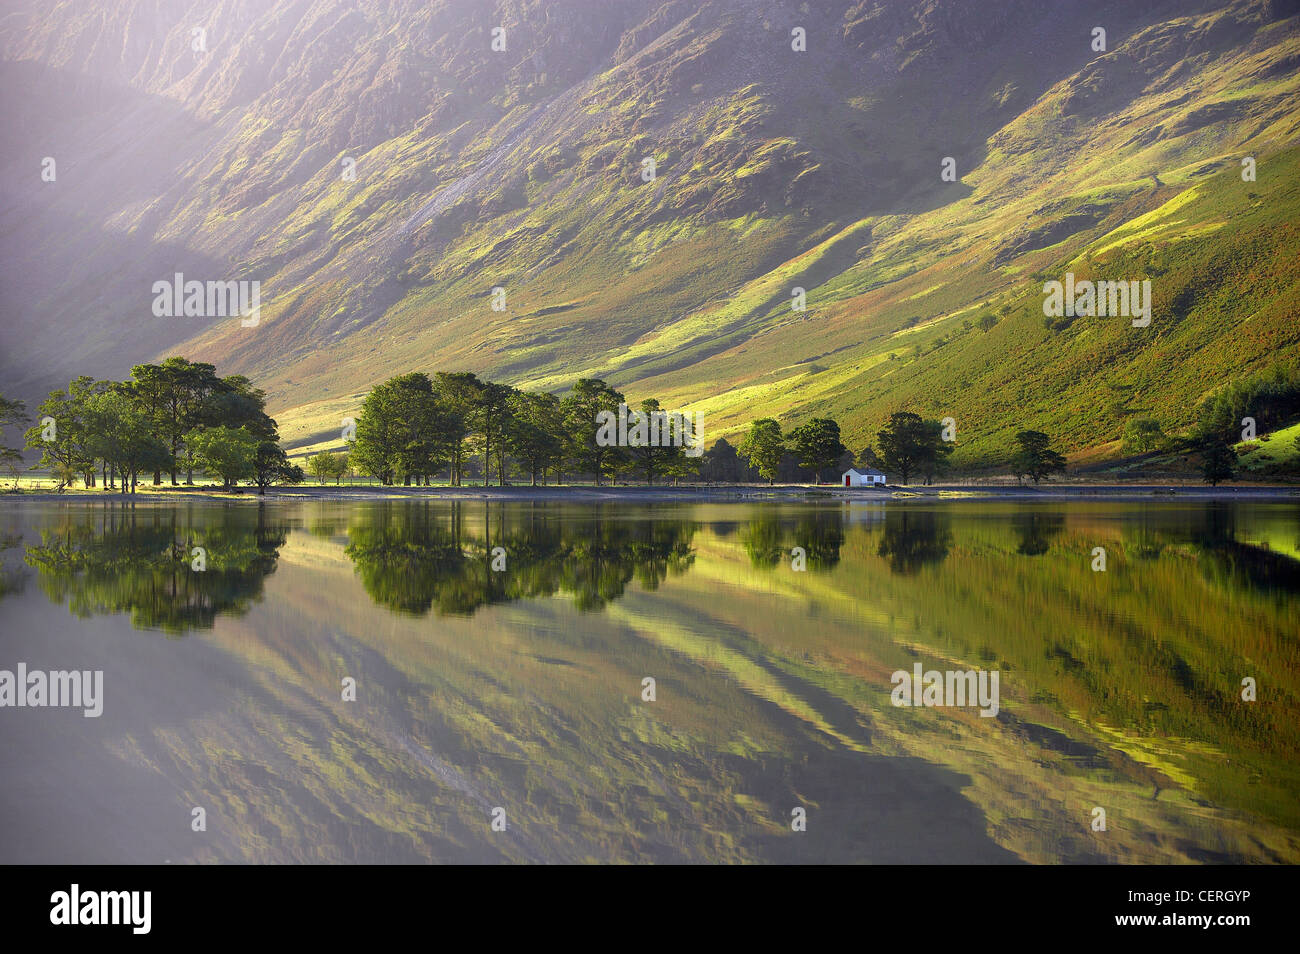 Réflexions sur la rive de la lande à l'aube, Cumbria, Lakes District, Cumbria, England, UK Photo Stock